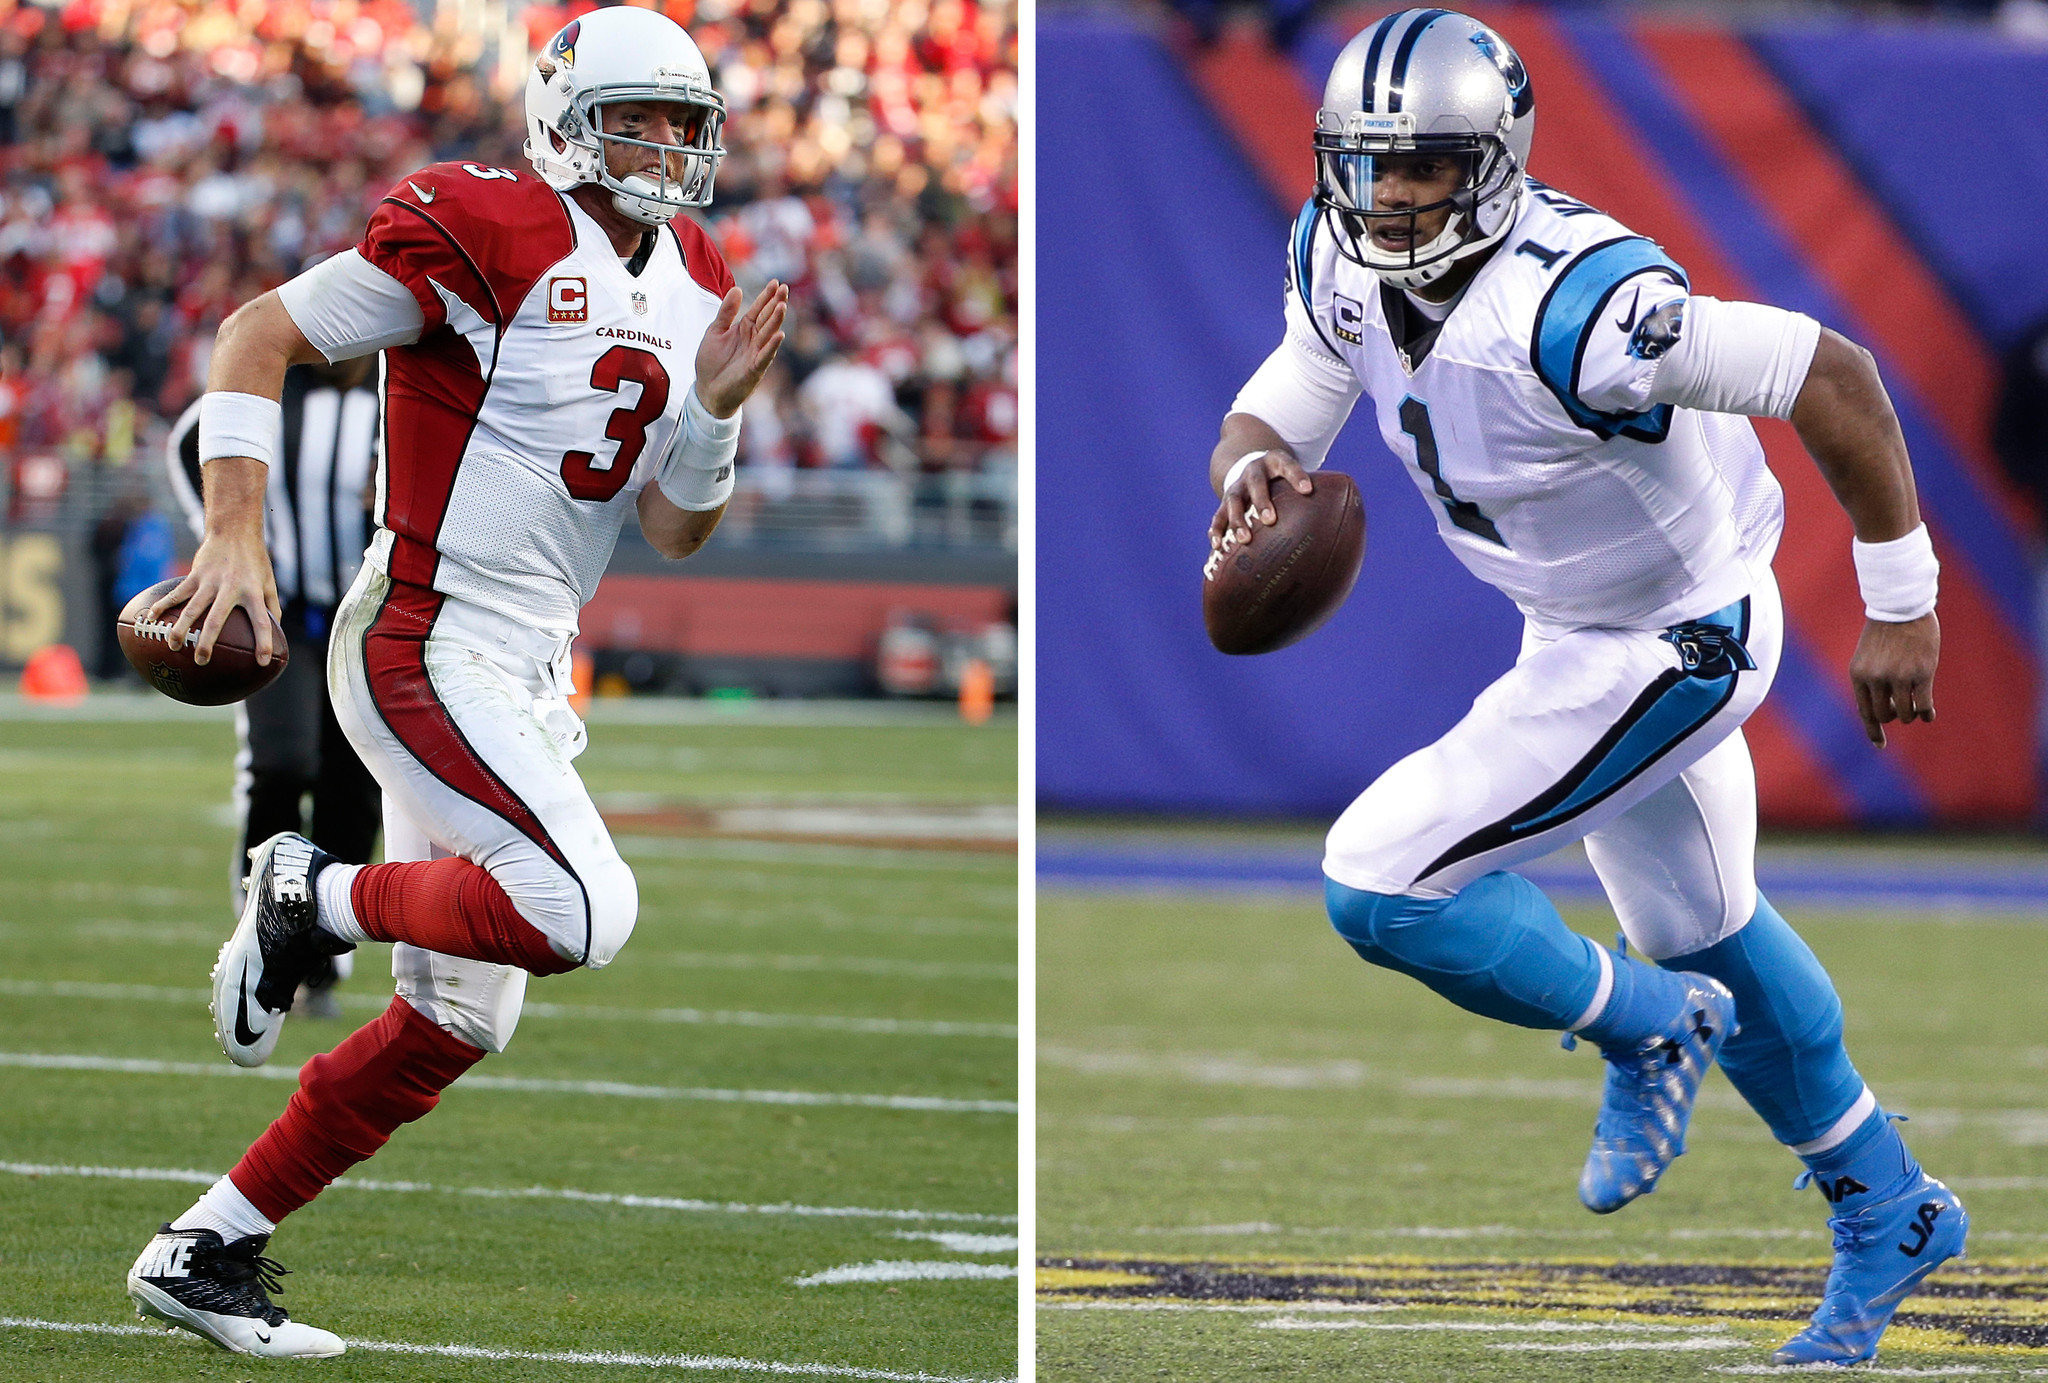 Cam Newton and Carson Palmer have several things in mon